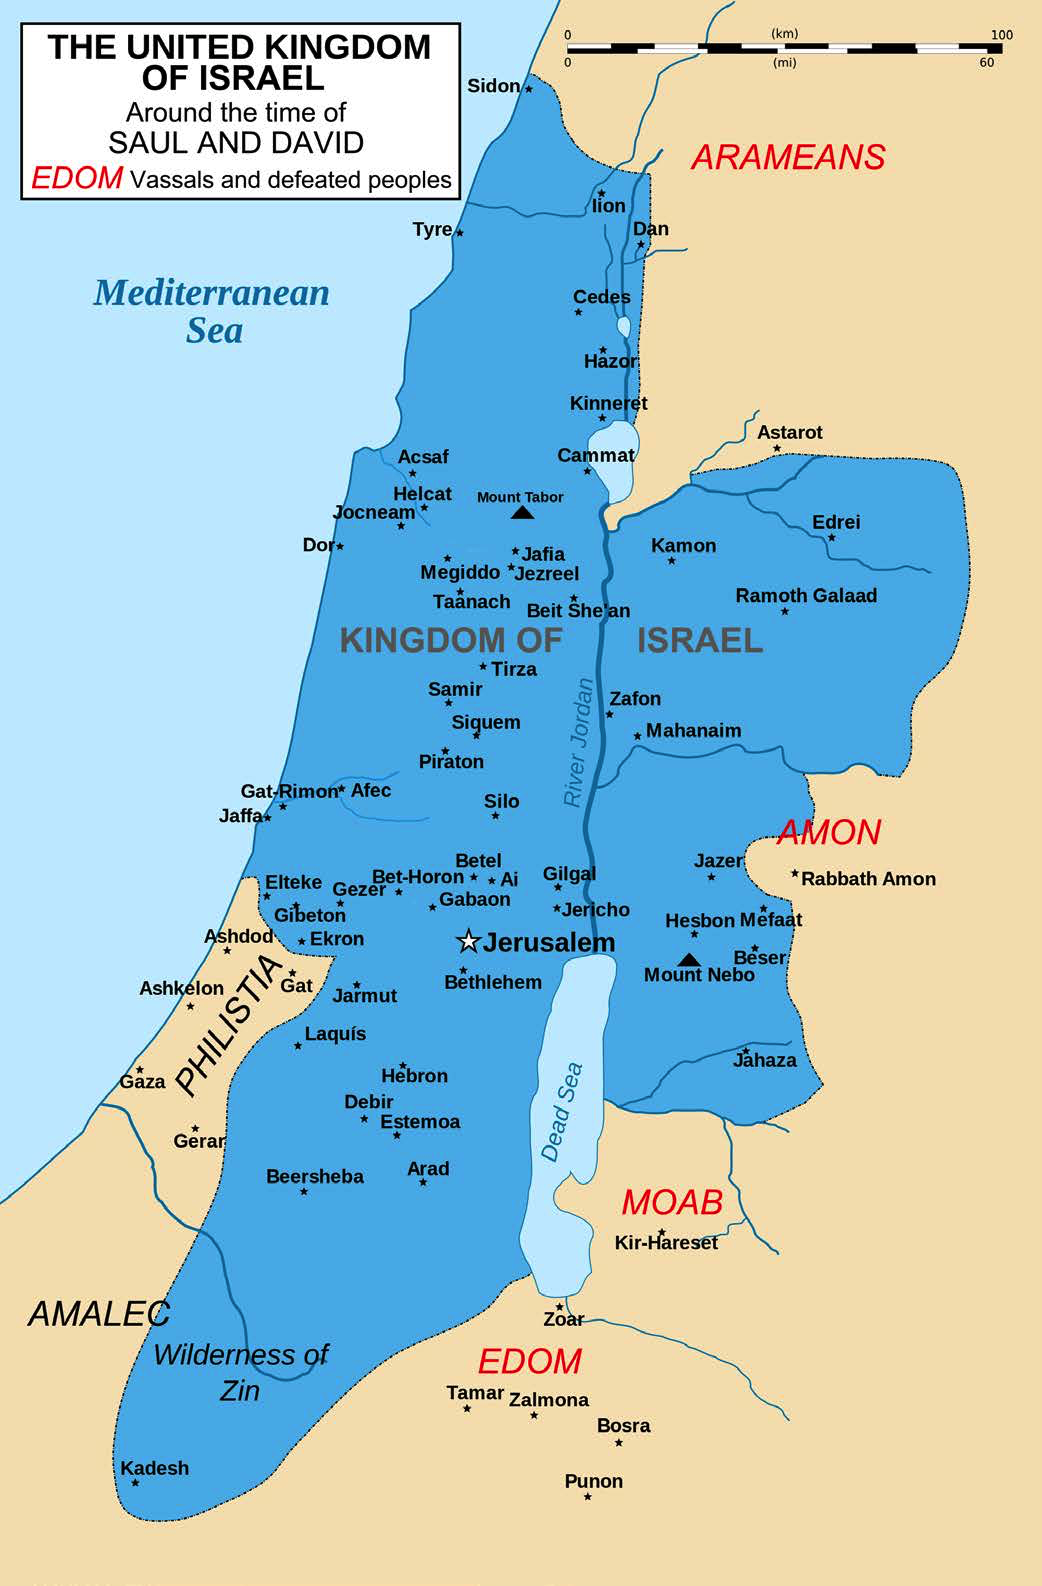 The United Kingdom of Israel | The map shows the unified state in blue, as well as the surrounding territories that paid tribute to the United Kingdom of Israel. | Author: Regno di Davide | Source: Wikimedia Commons | License: CC BY-SA 3.0